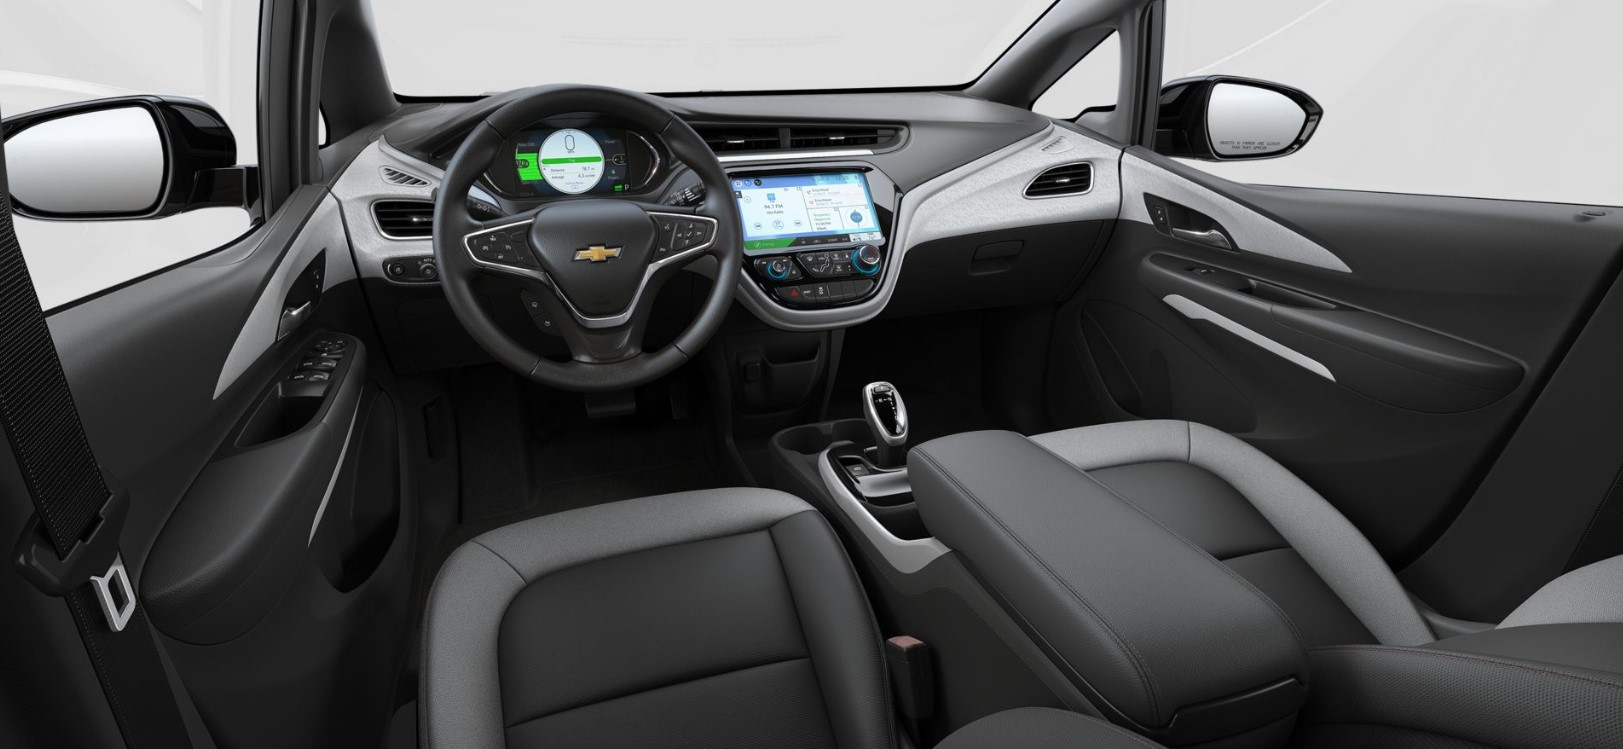 2019 Chevrolet Bolt Black Interior